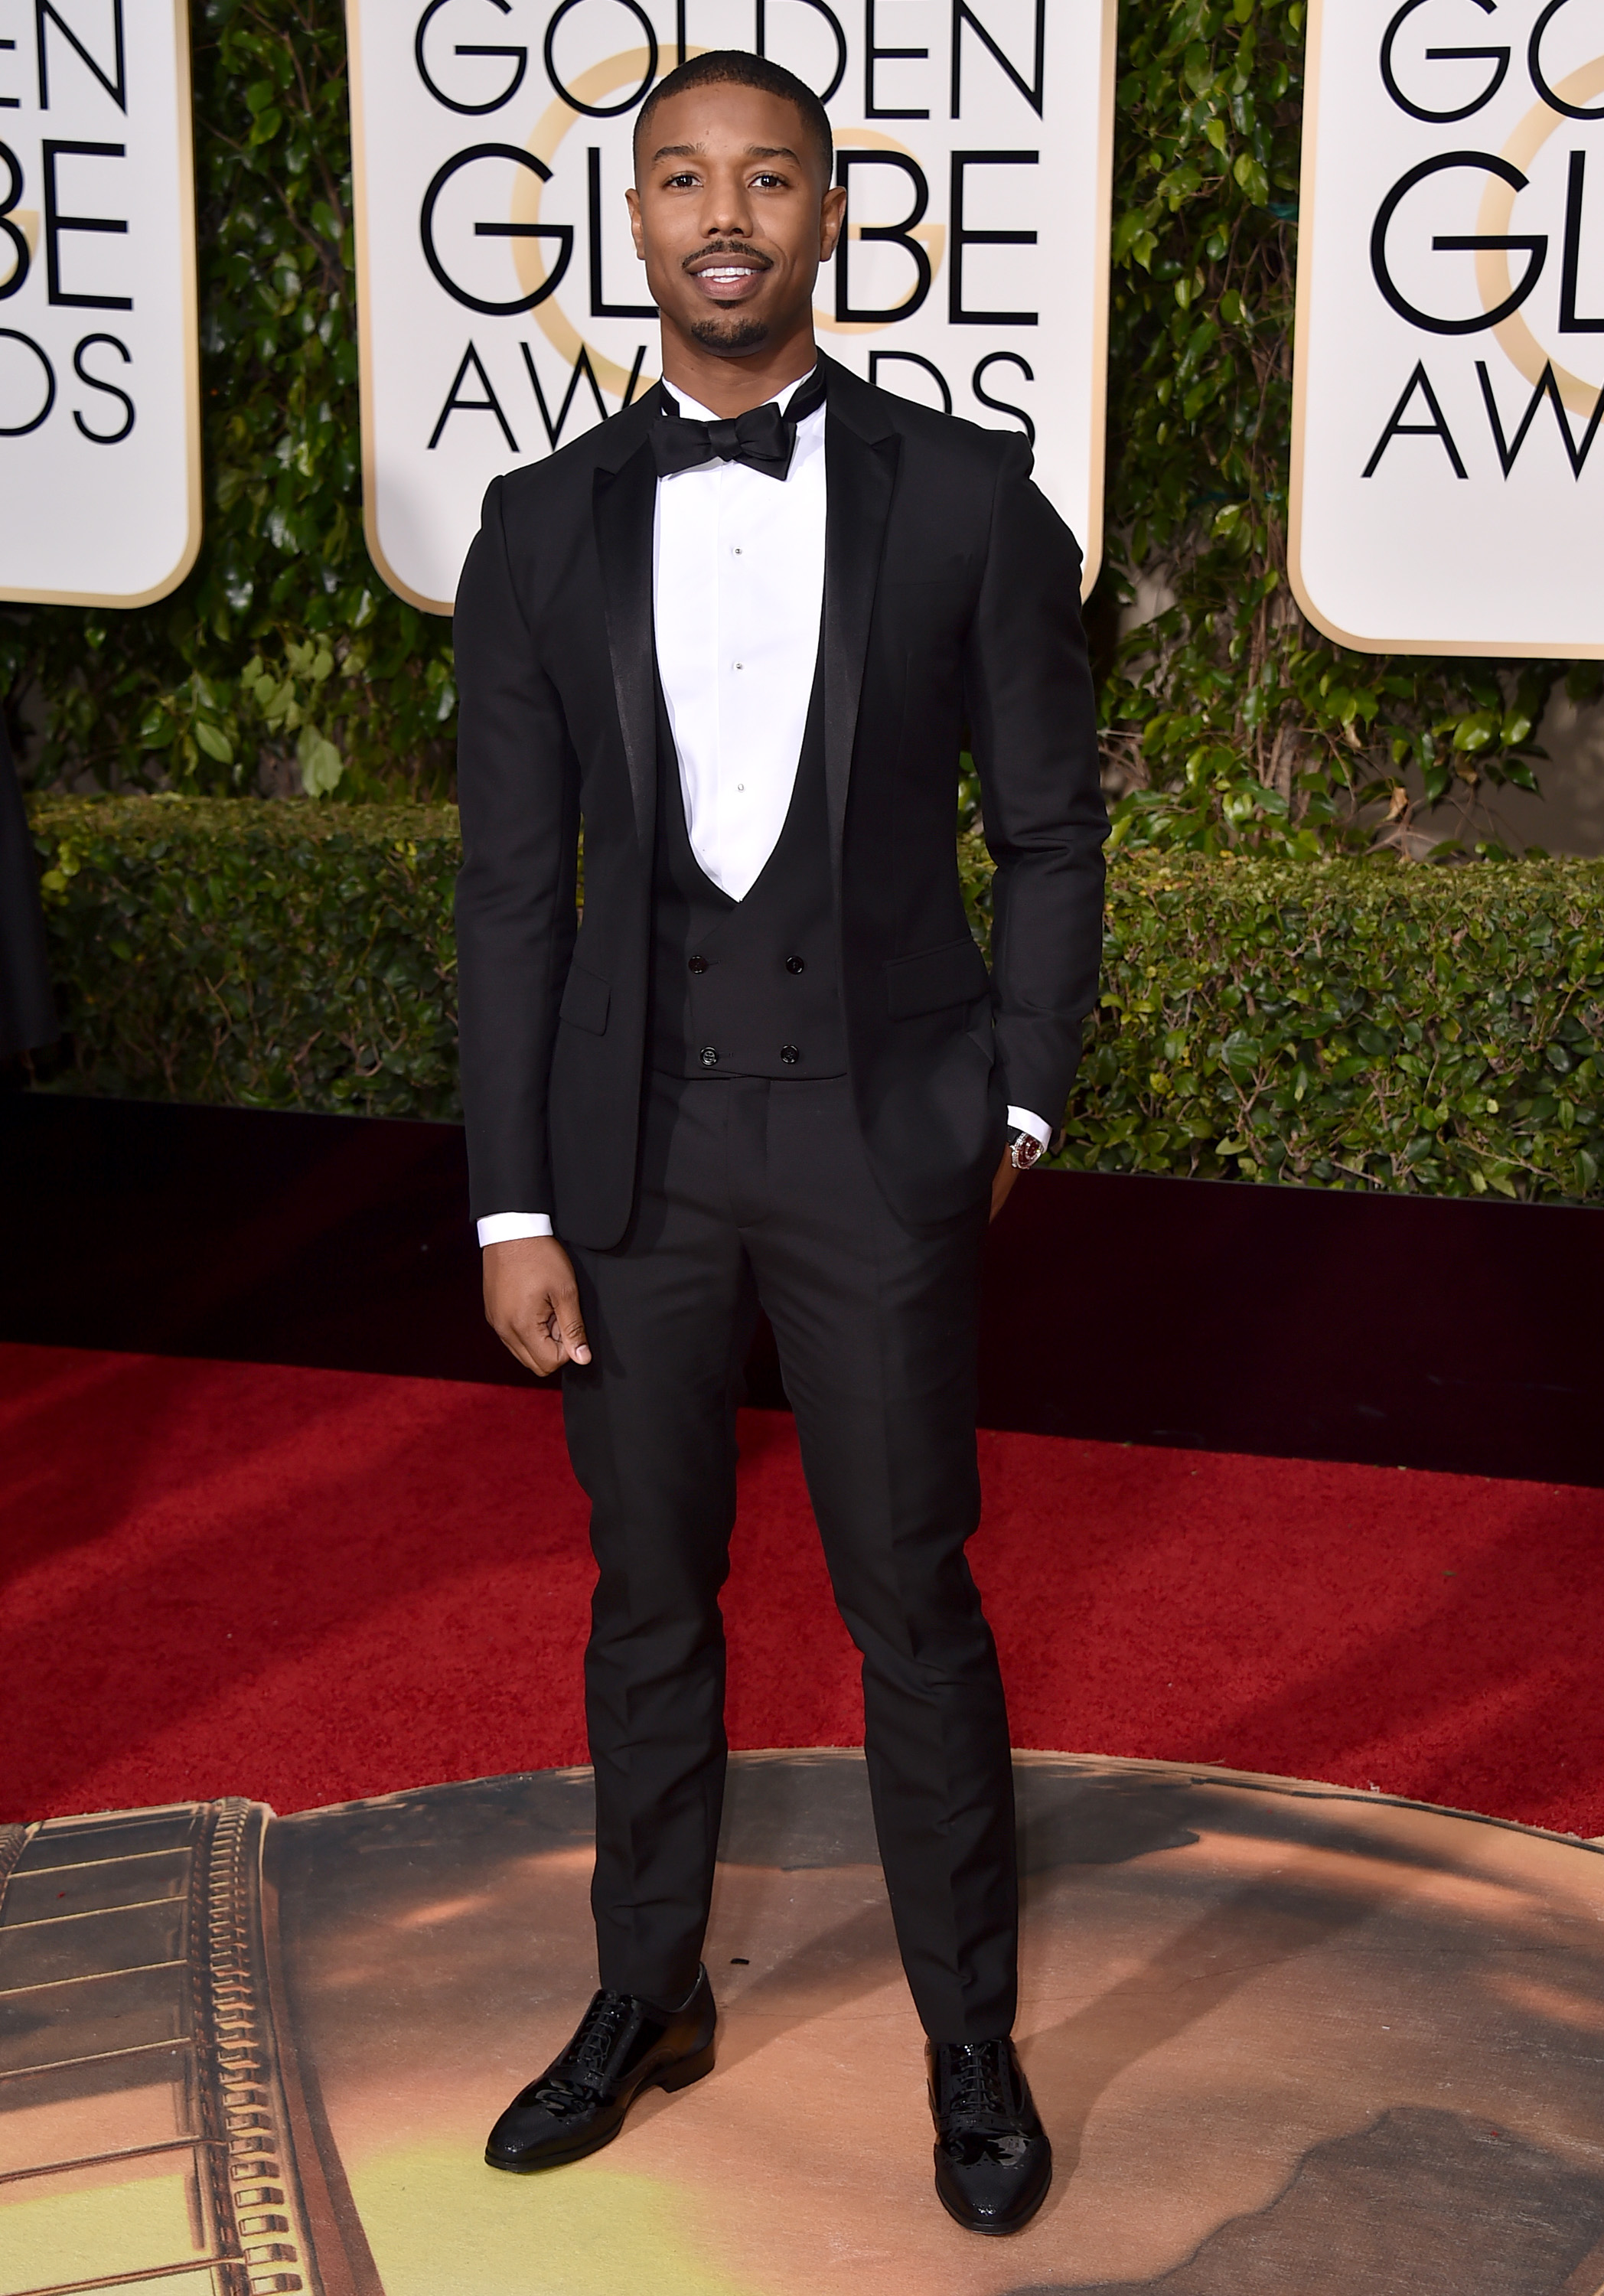 Michael B. Jordan arrives at the 73rd annual Golden Globe Awards on Sunday, Jan. 10, 2016, at the Beverly Hilton Hotel in Beverly Hills, Calif. (Photo by Jordan Strauss/Invision/AP)